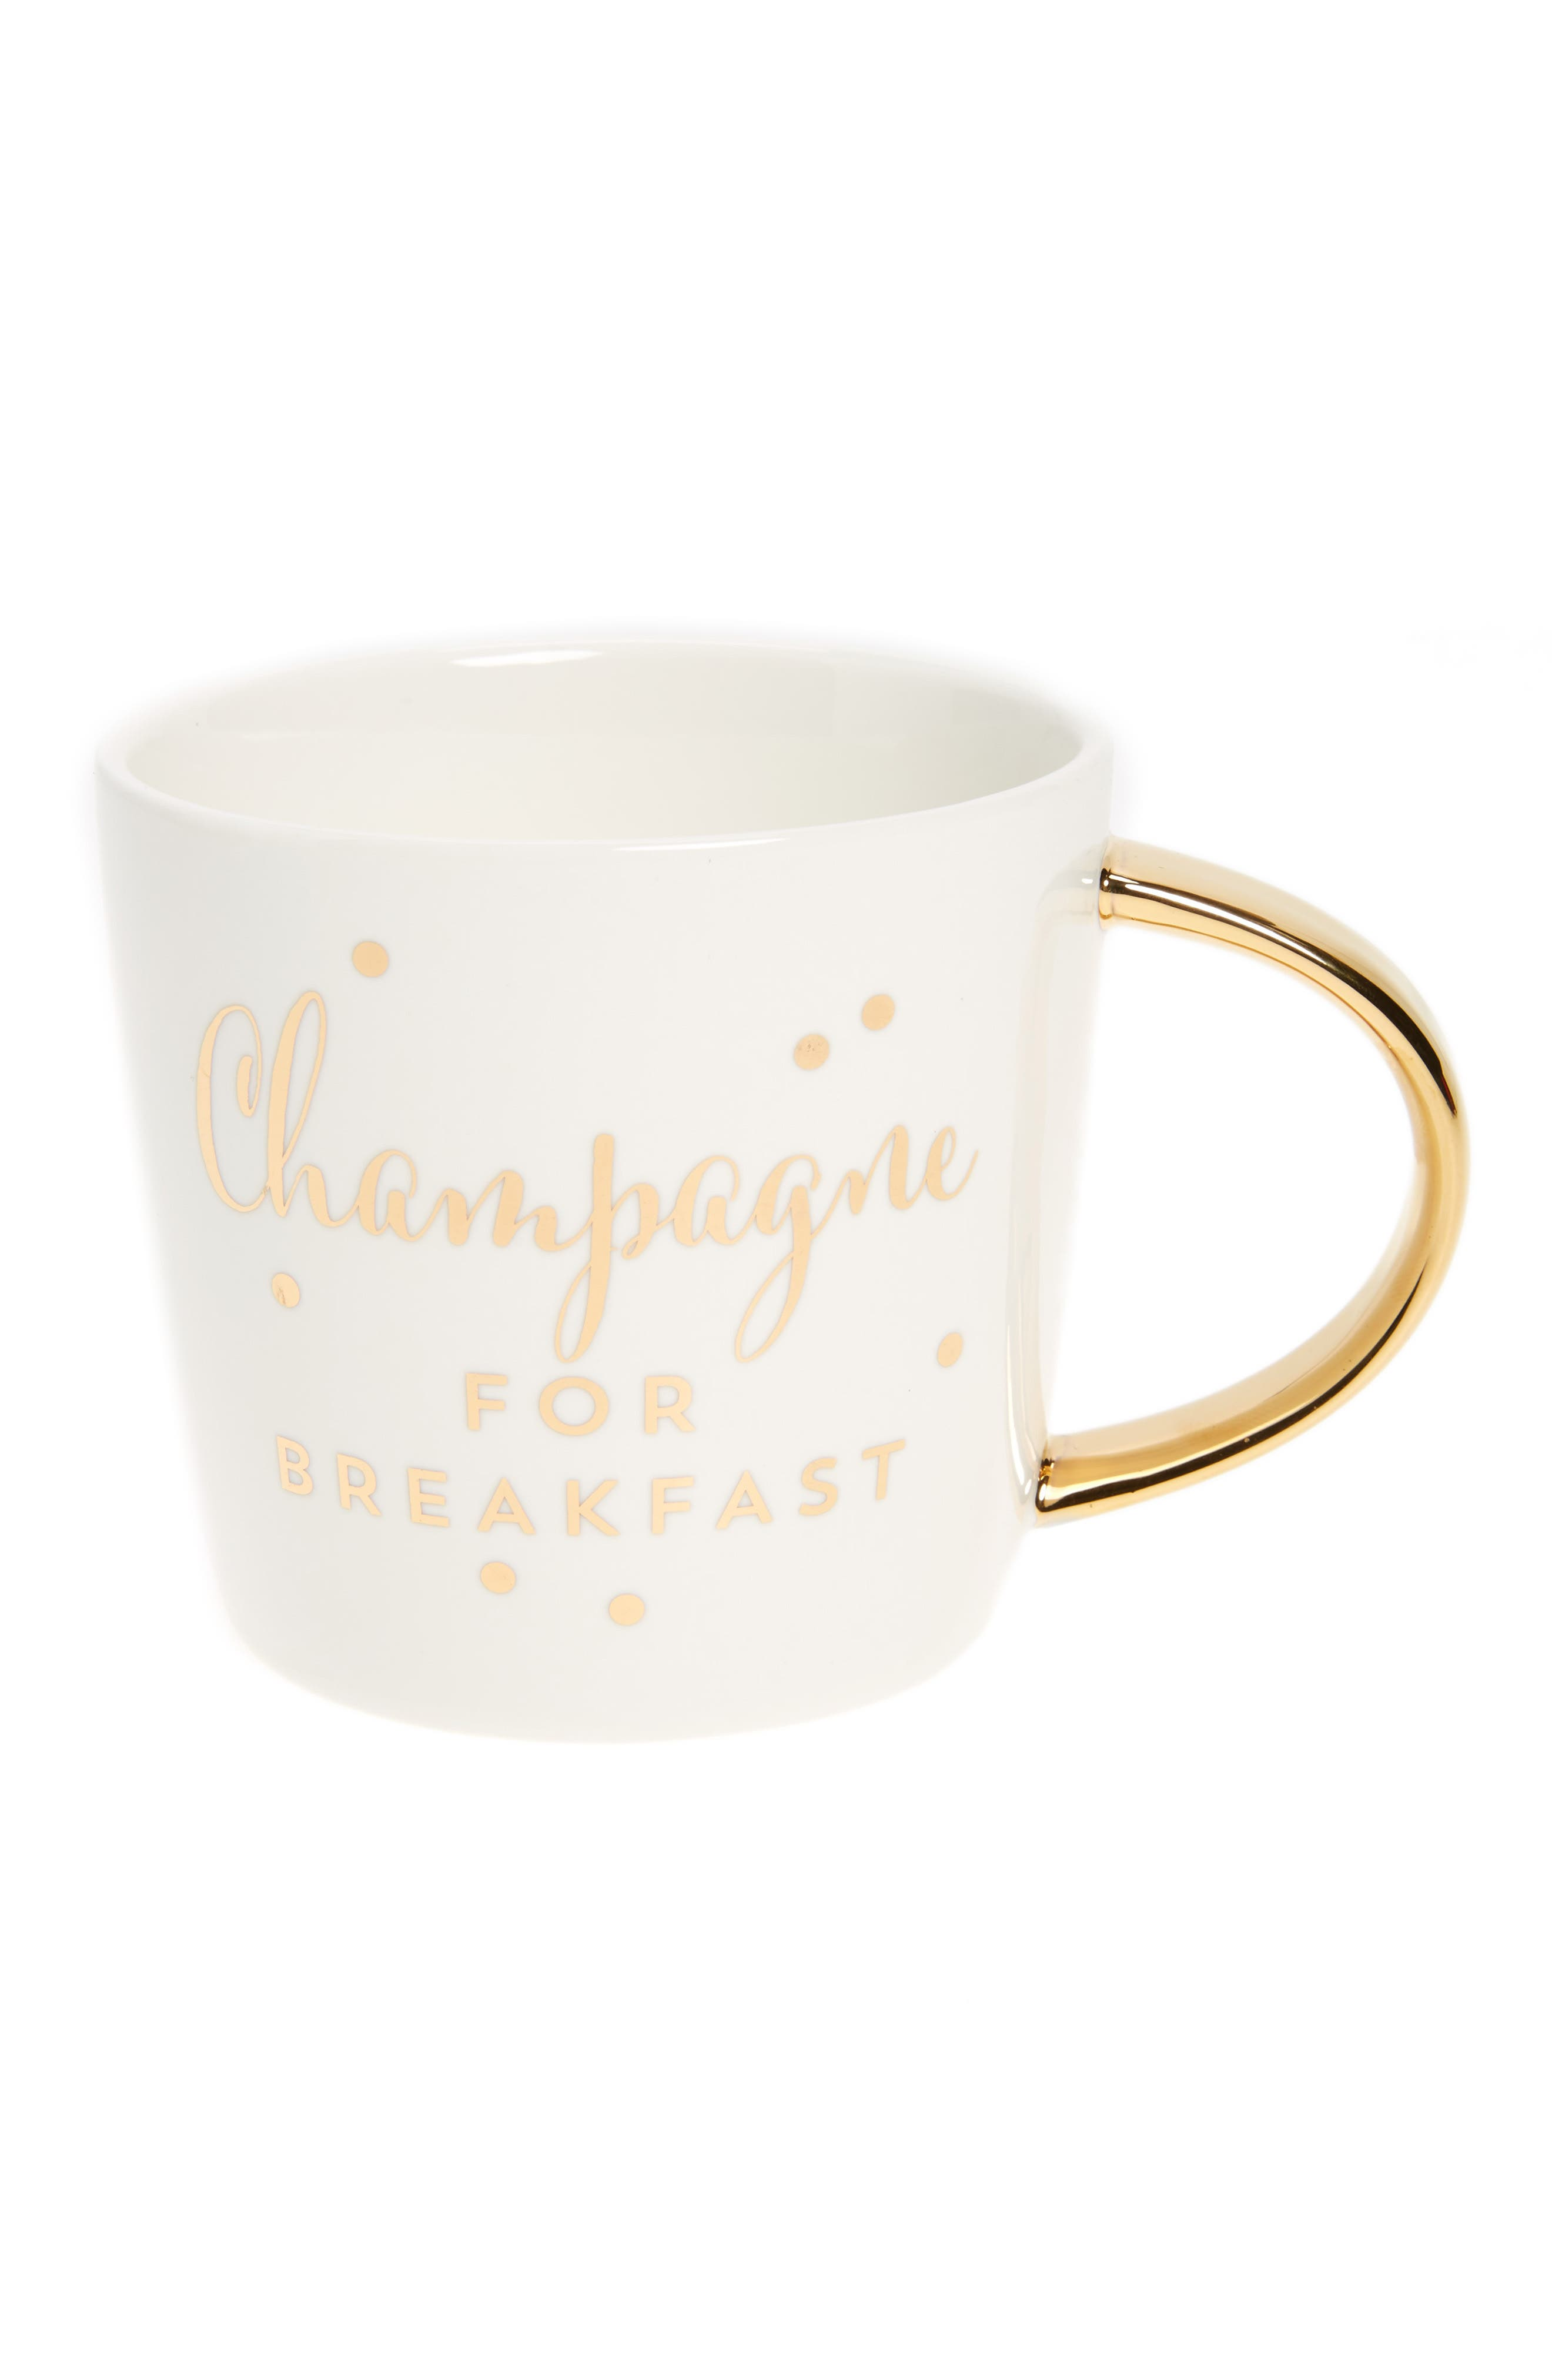 Slant Collections Champagne For Breakfast Mug